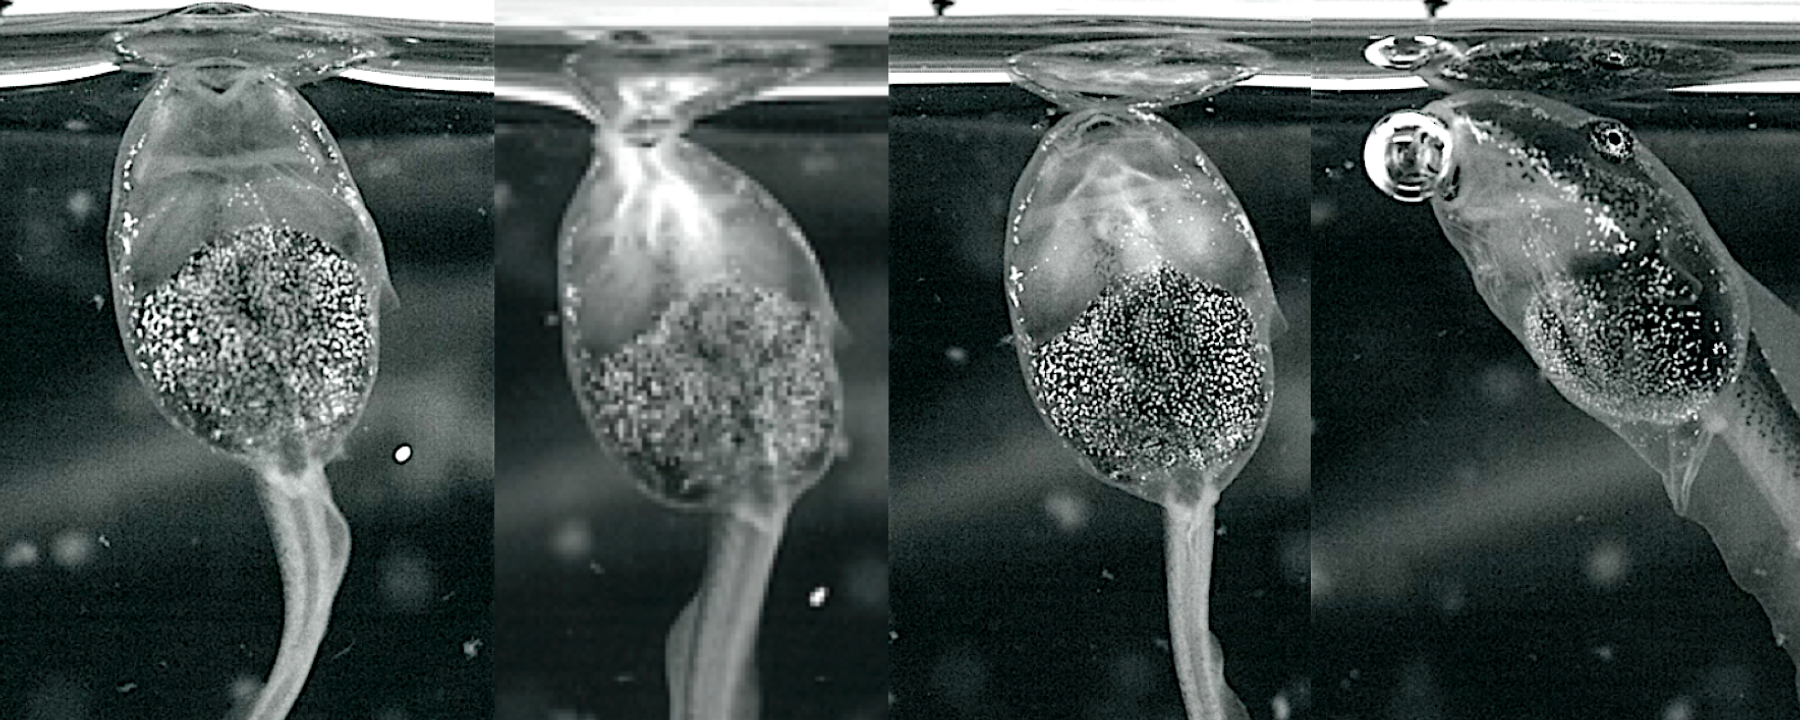 Image of the Day: Bubble Suckers